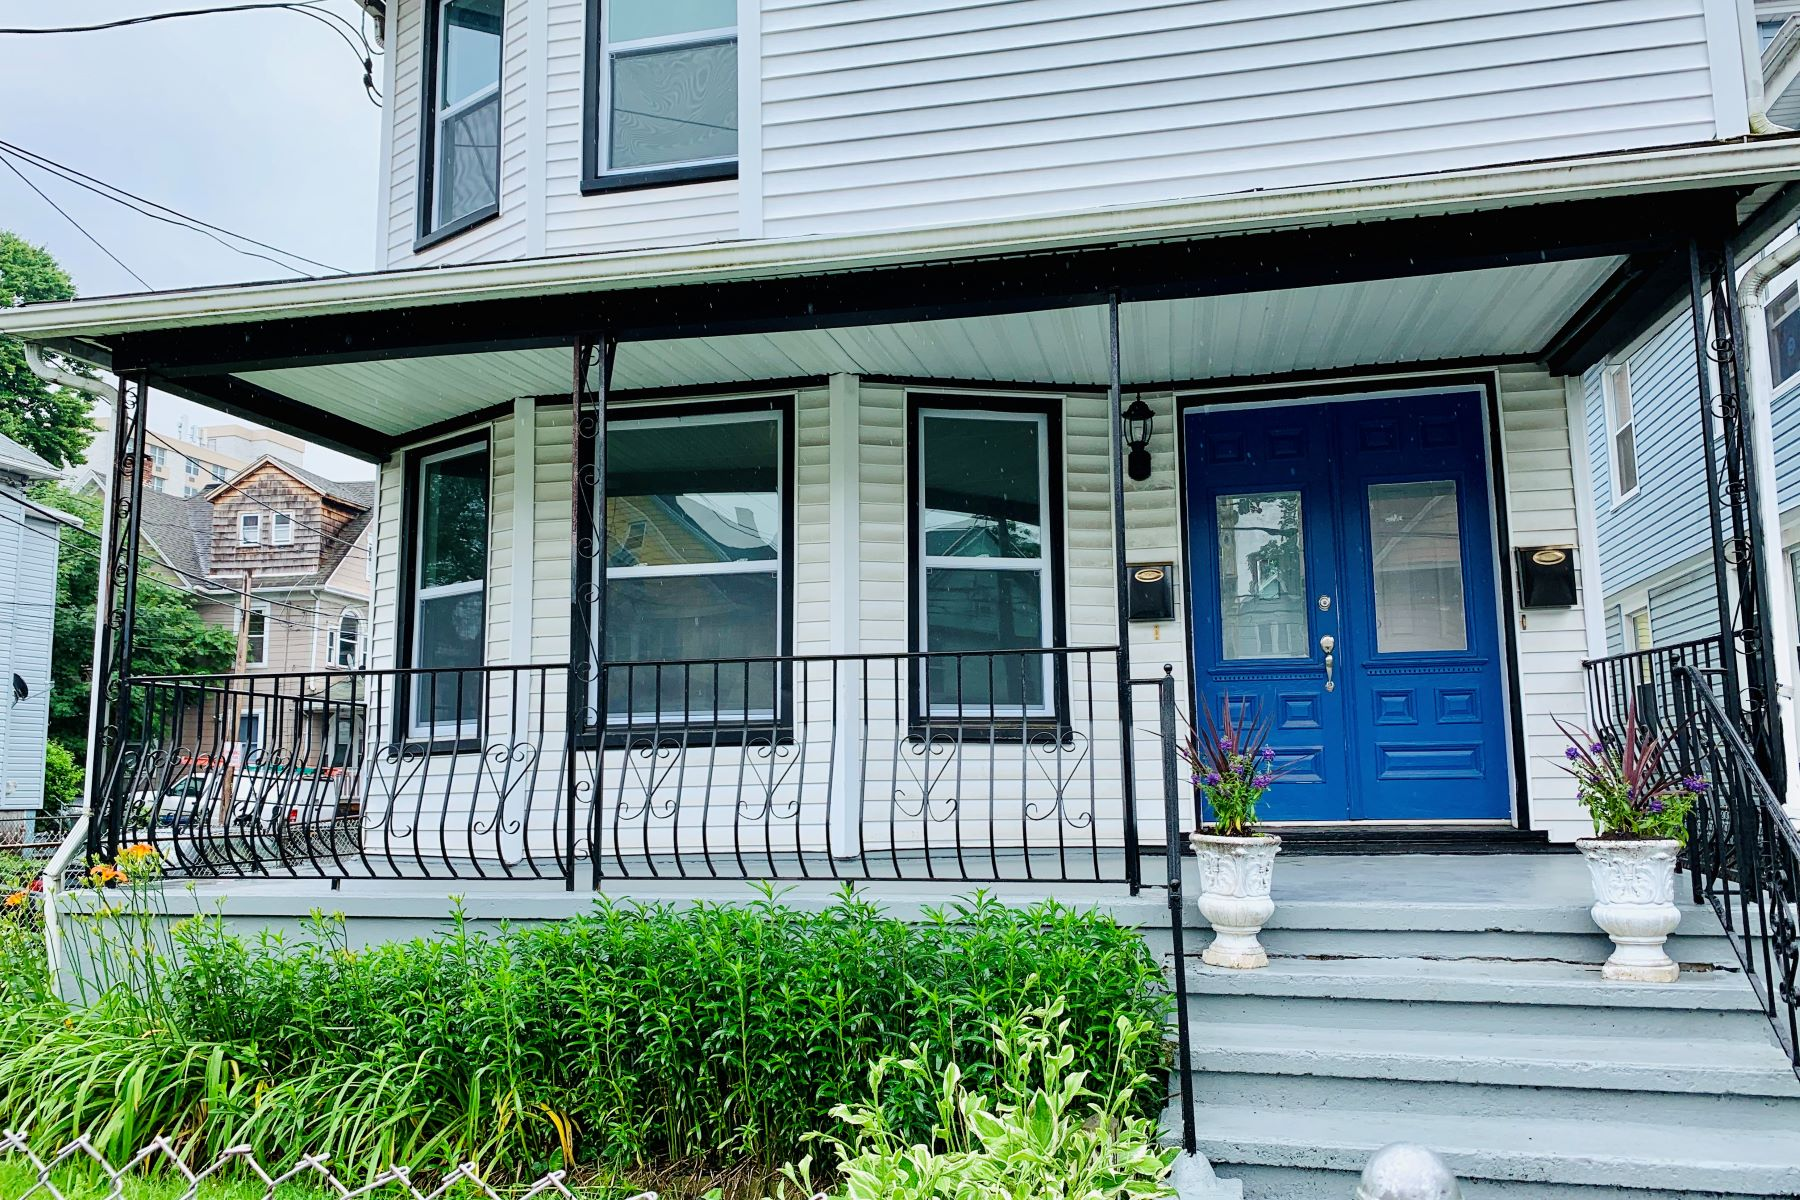 Multi-Family Homes for Sale at Renovated 2 Family 40 Washington Terrace Bridgeport, Connecticut 06604 United States